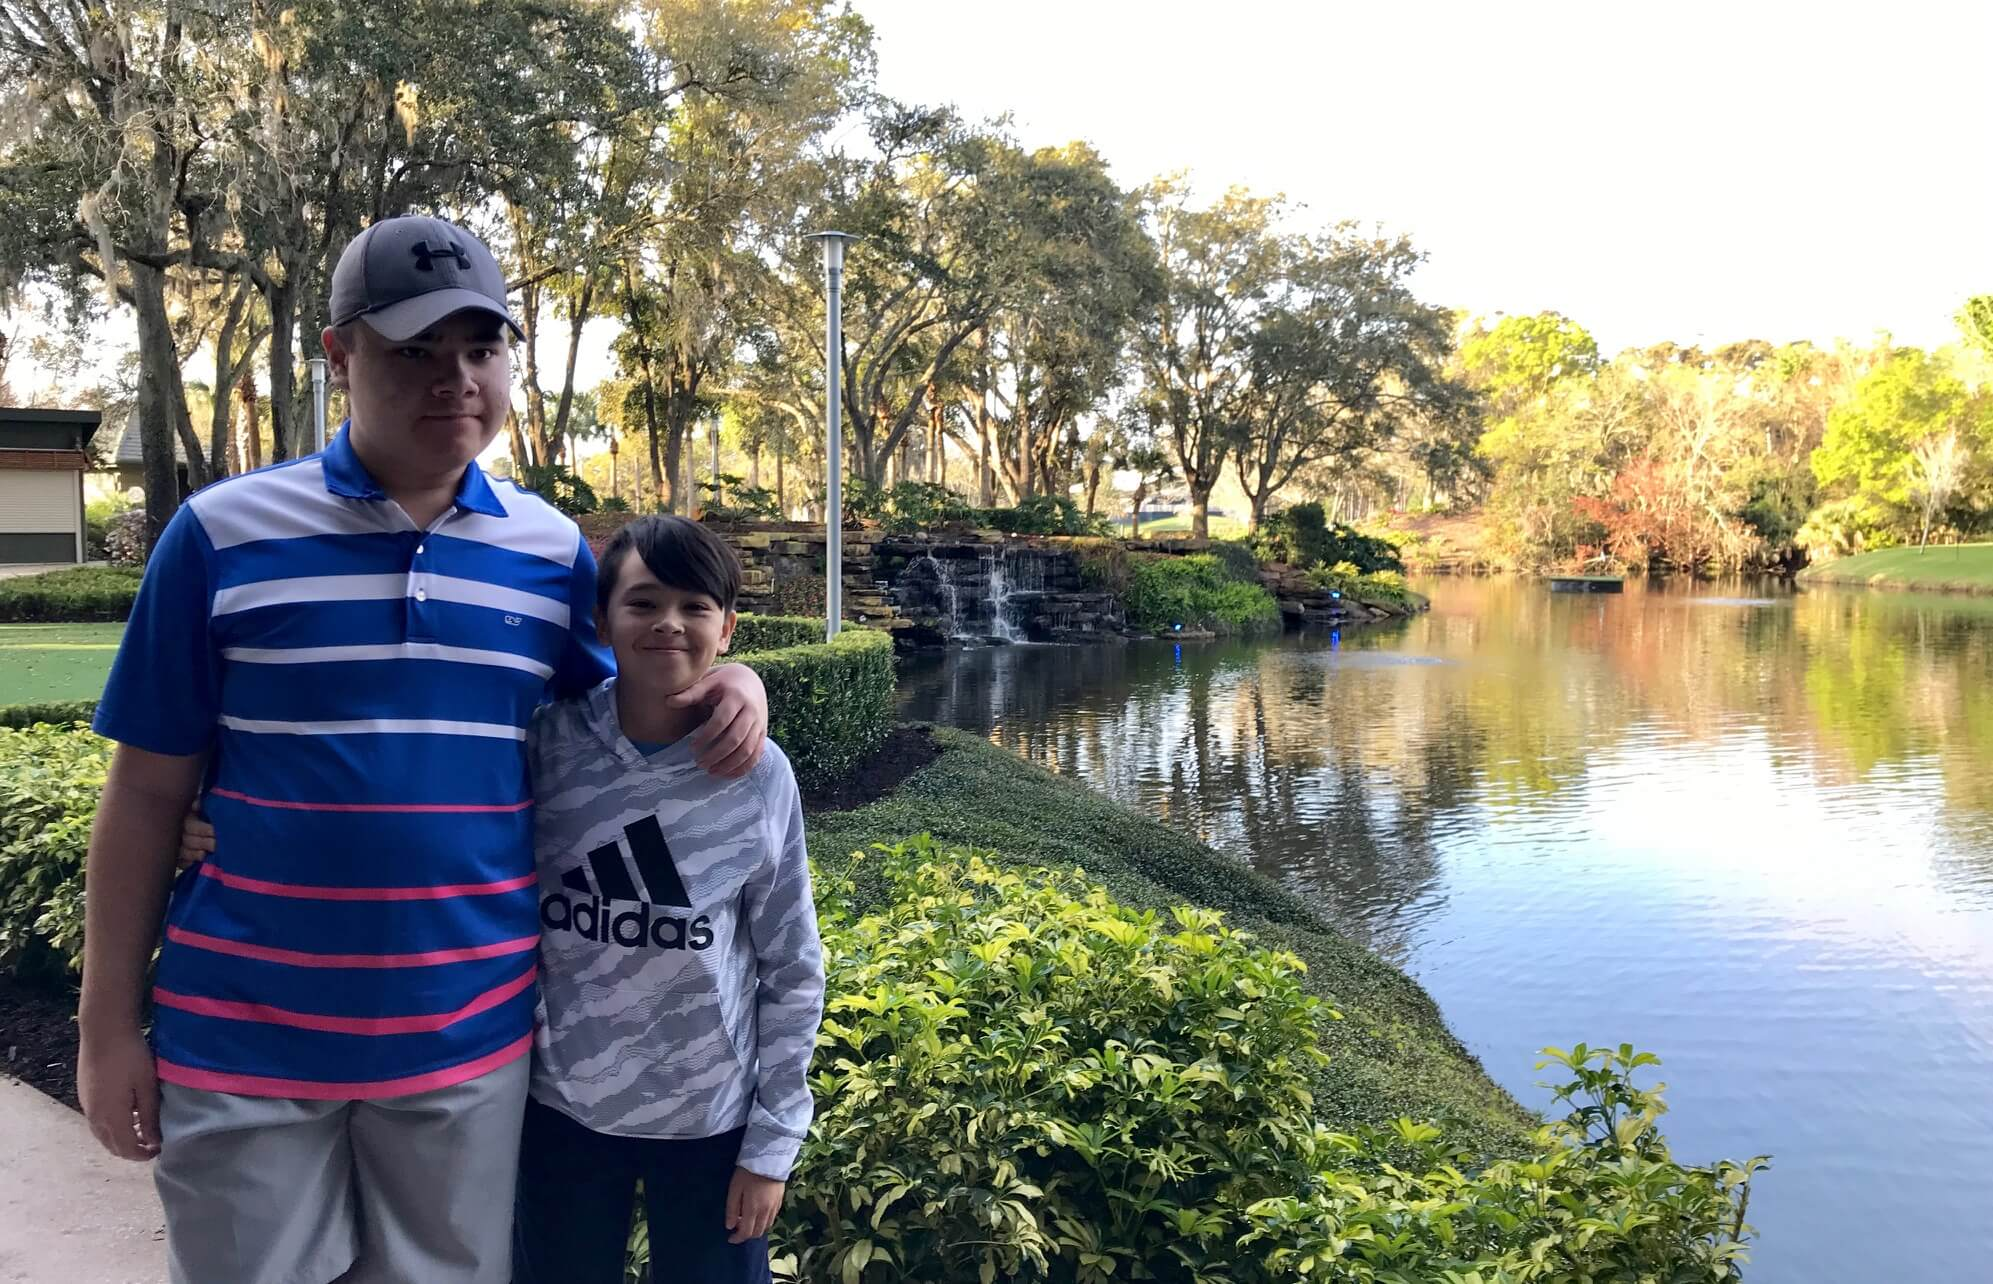 Enjoying nature at Sawgrass Marriott- Calming parts of nature good for Autism